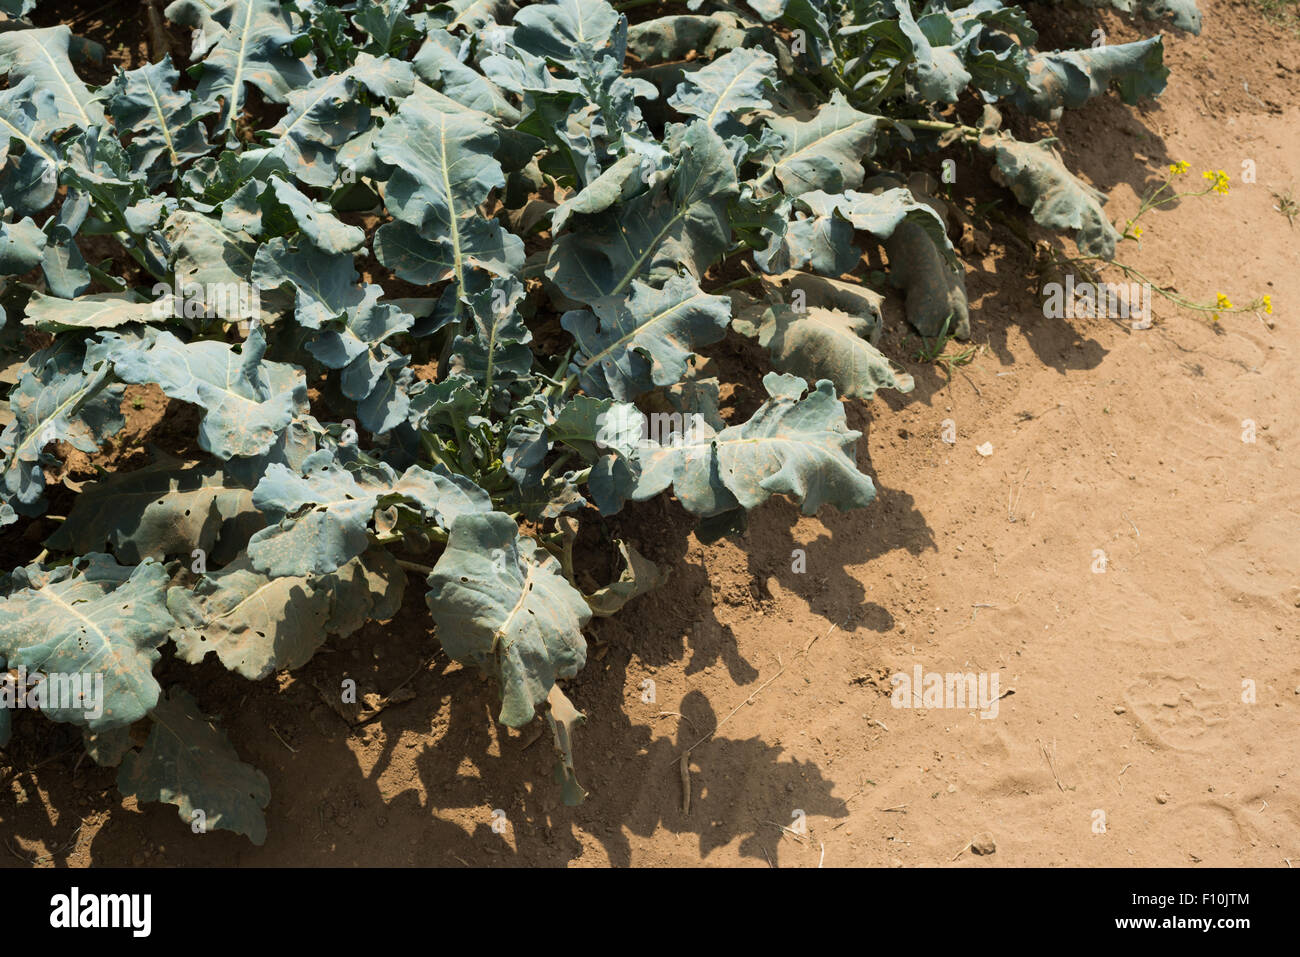 Dusts on broccoli farmland during dry season in Indonesia. - Stock Image